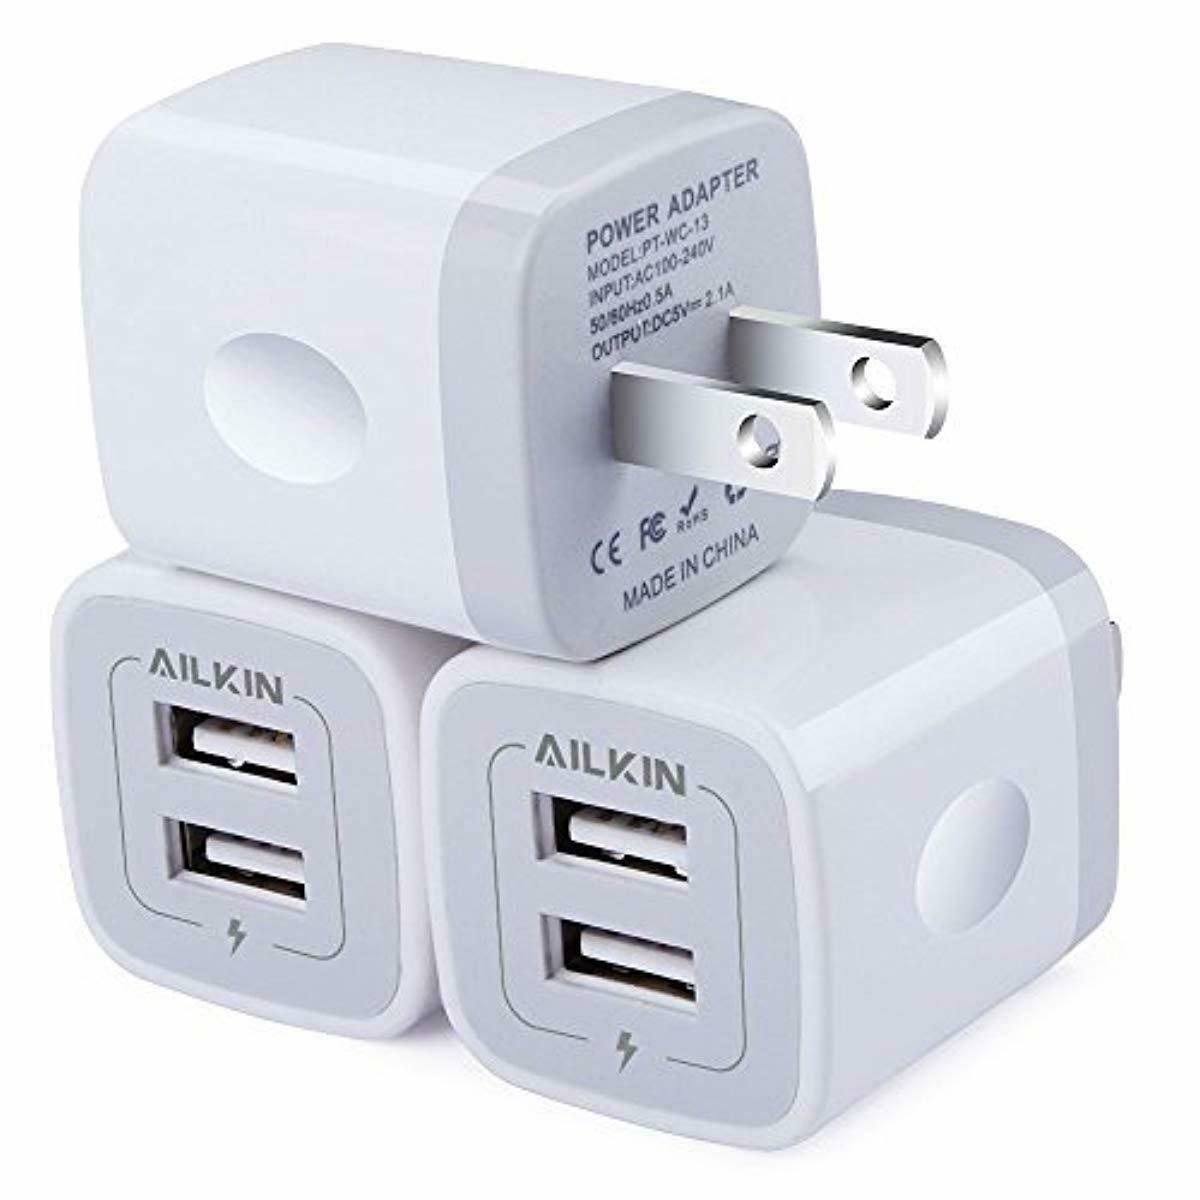 3 Pack Ailkin Wall Charger Plug Power Adapter Replacement for IPhone Samsung New